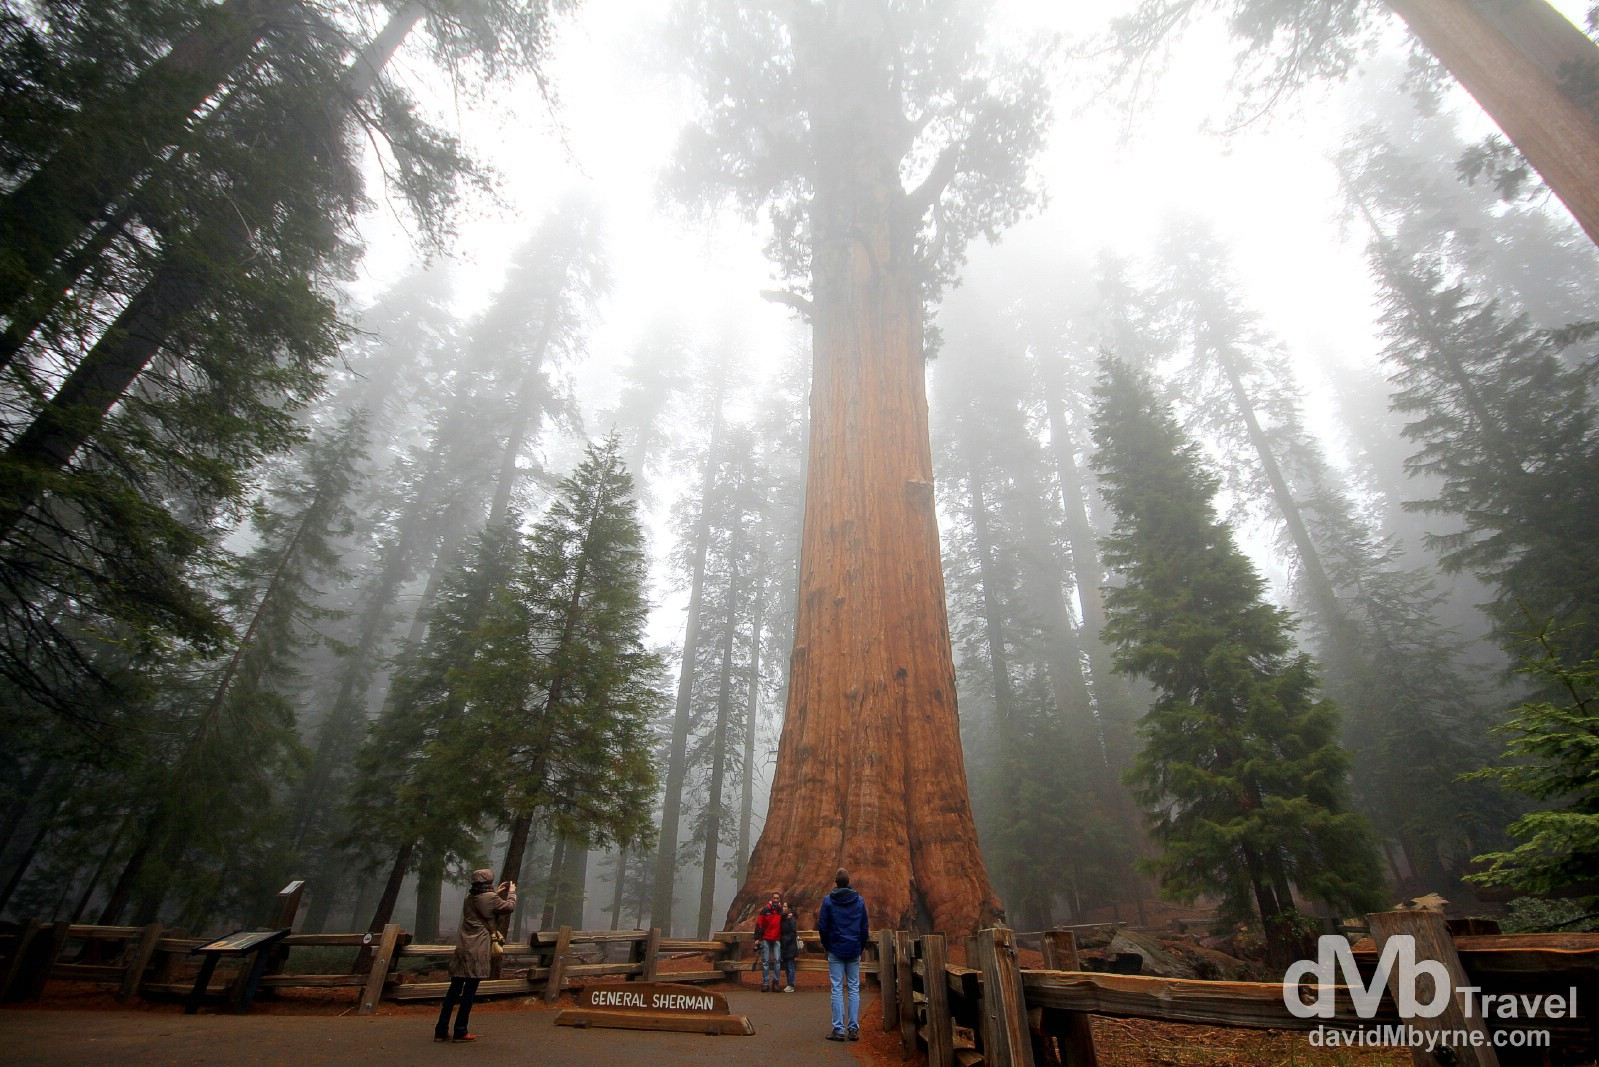 General Sherman, the largest tree on earth, in Sequoia National Park, California, USA. April 2nd 2013.